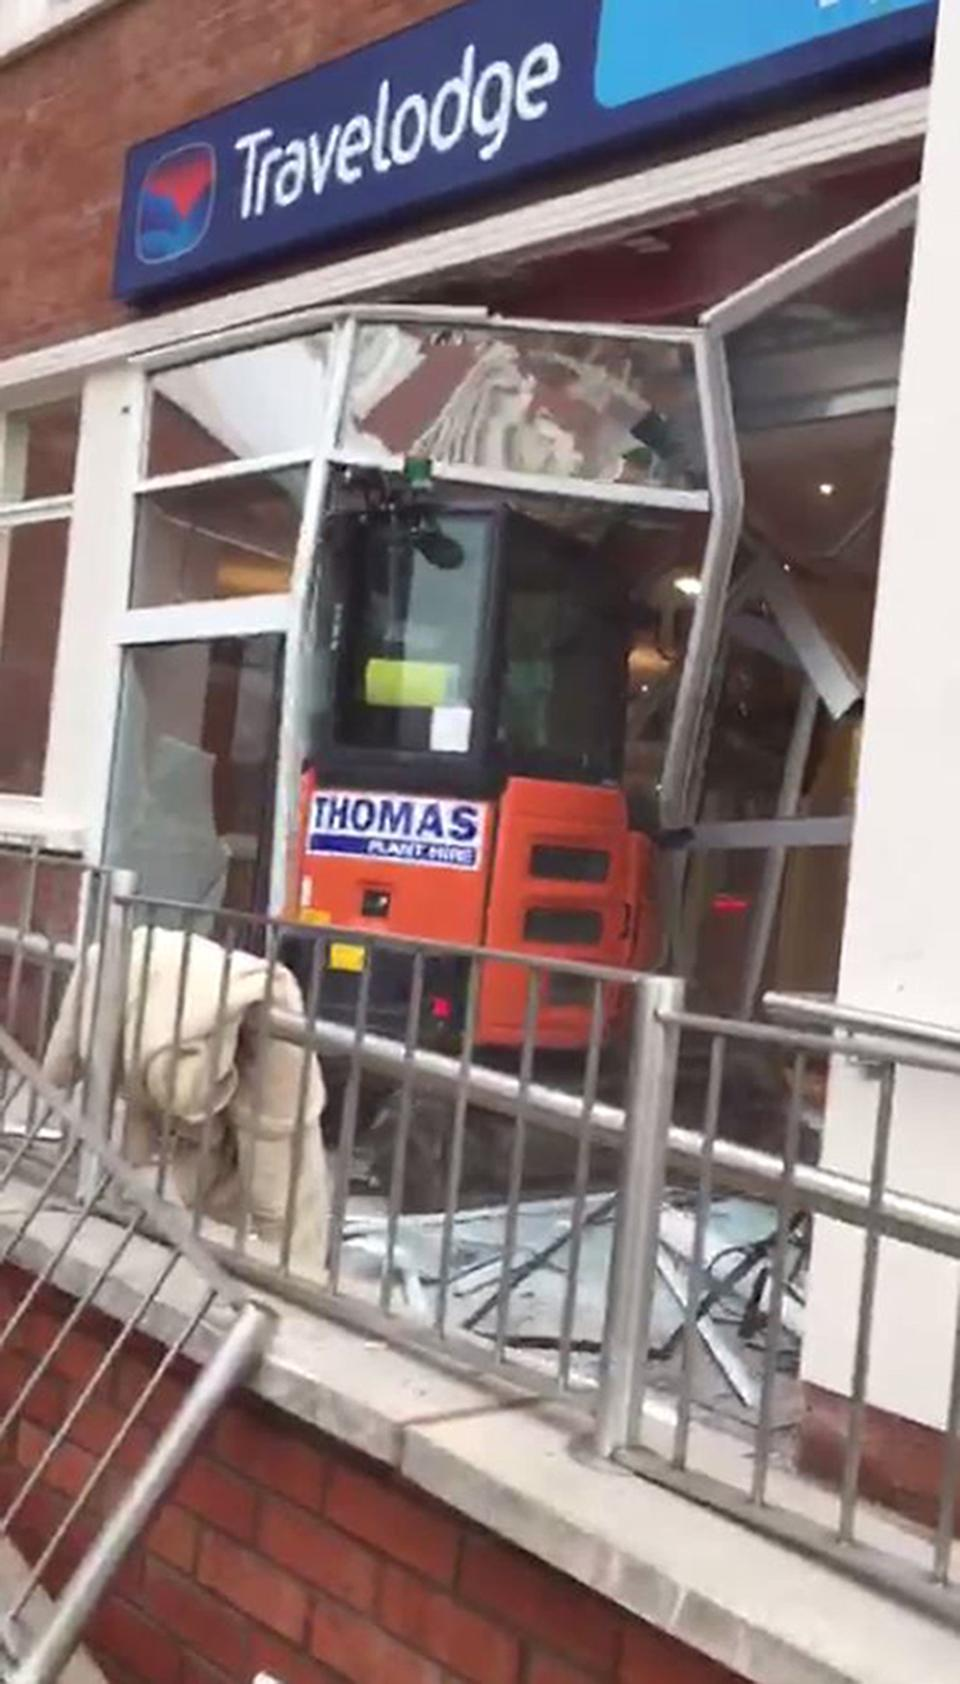 John Manley drove a digger through the front of the hotel on January 21.